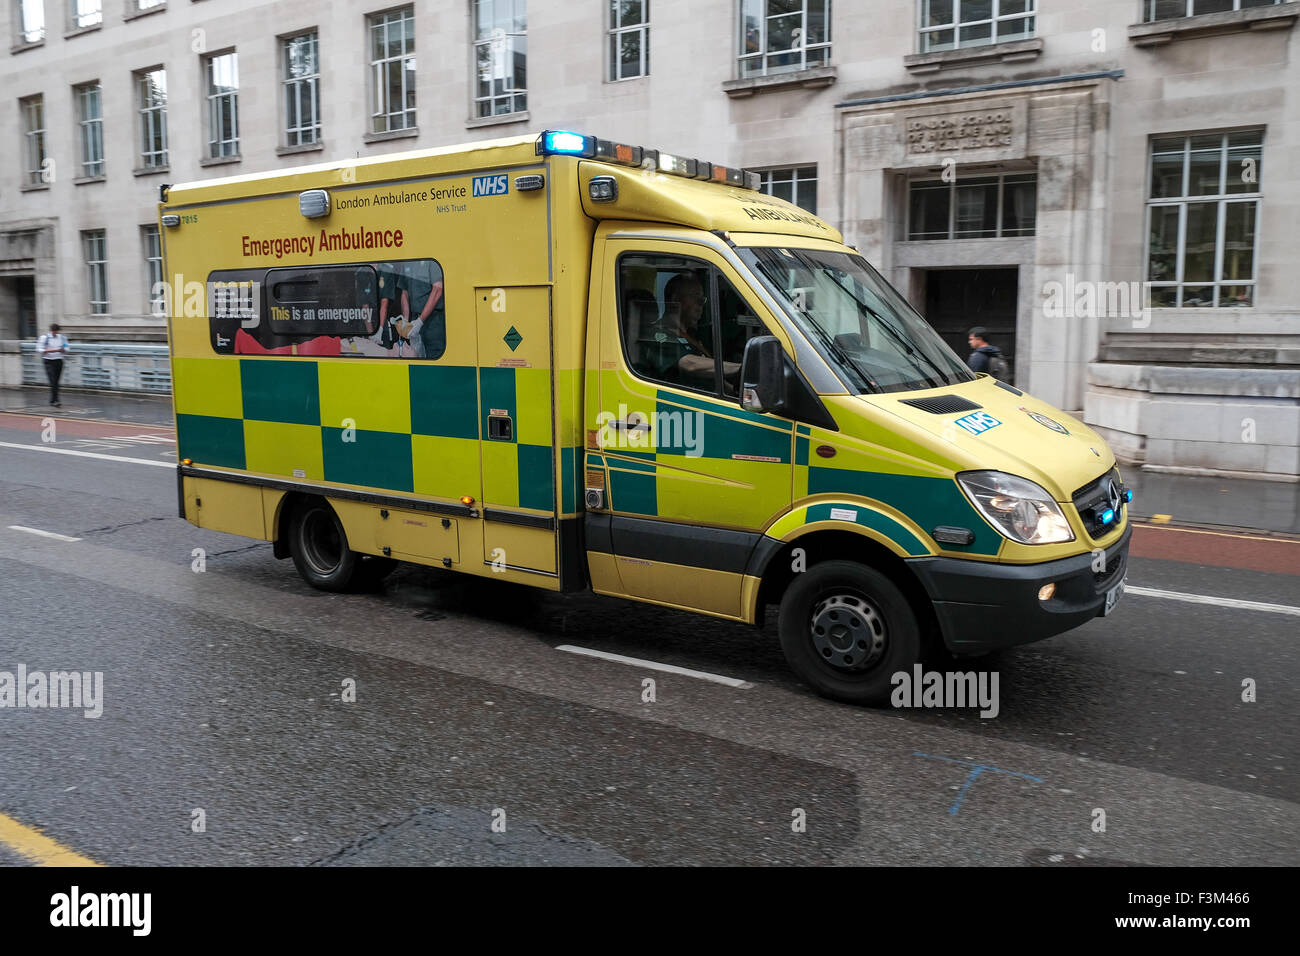 London ambulance services on an emergency call past London school of Hygiene and tropical medicine Stock Photo